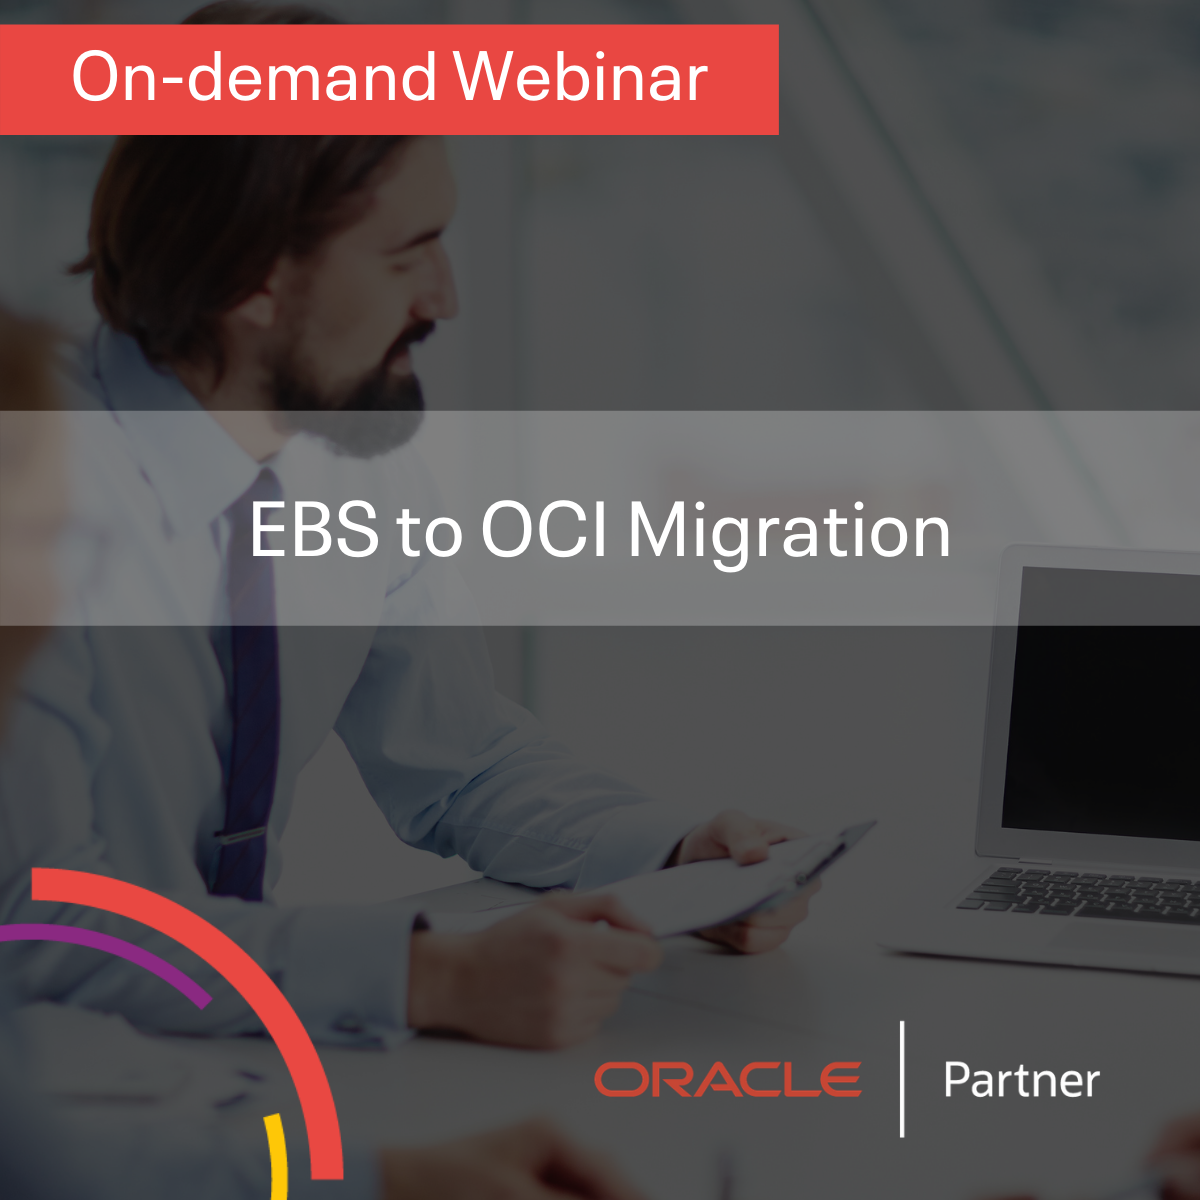 EBS to OCI Migration